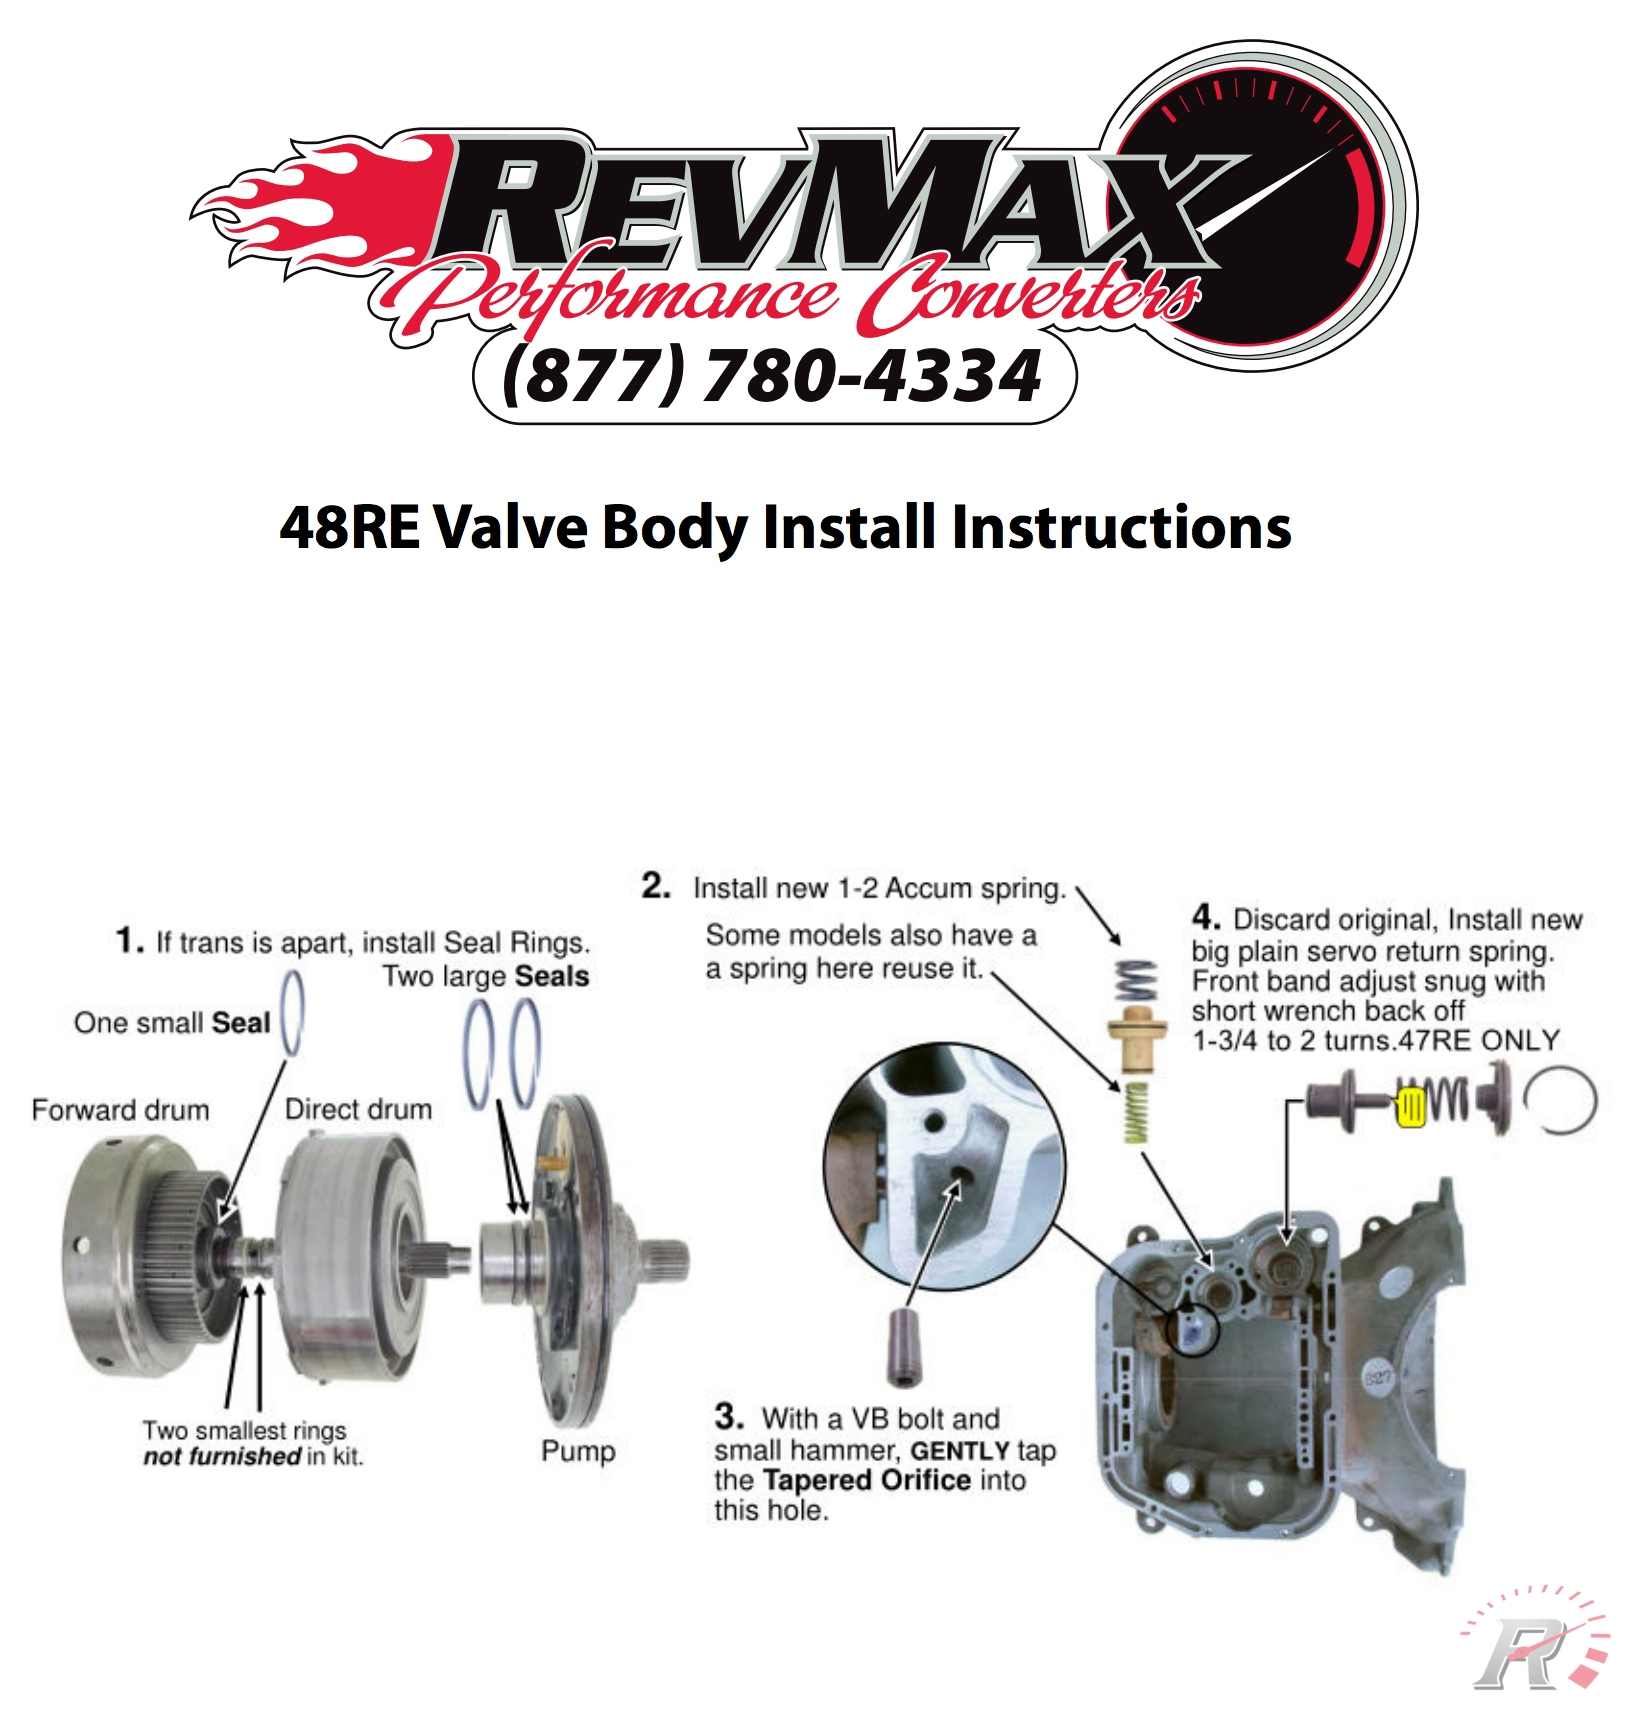 47rh Manual 48re Throttle Valve Actuator Wiring Diagram Array Body Install Instructions Revmax Converters Rh Revmaxconverters